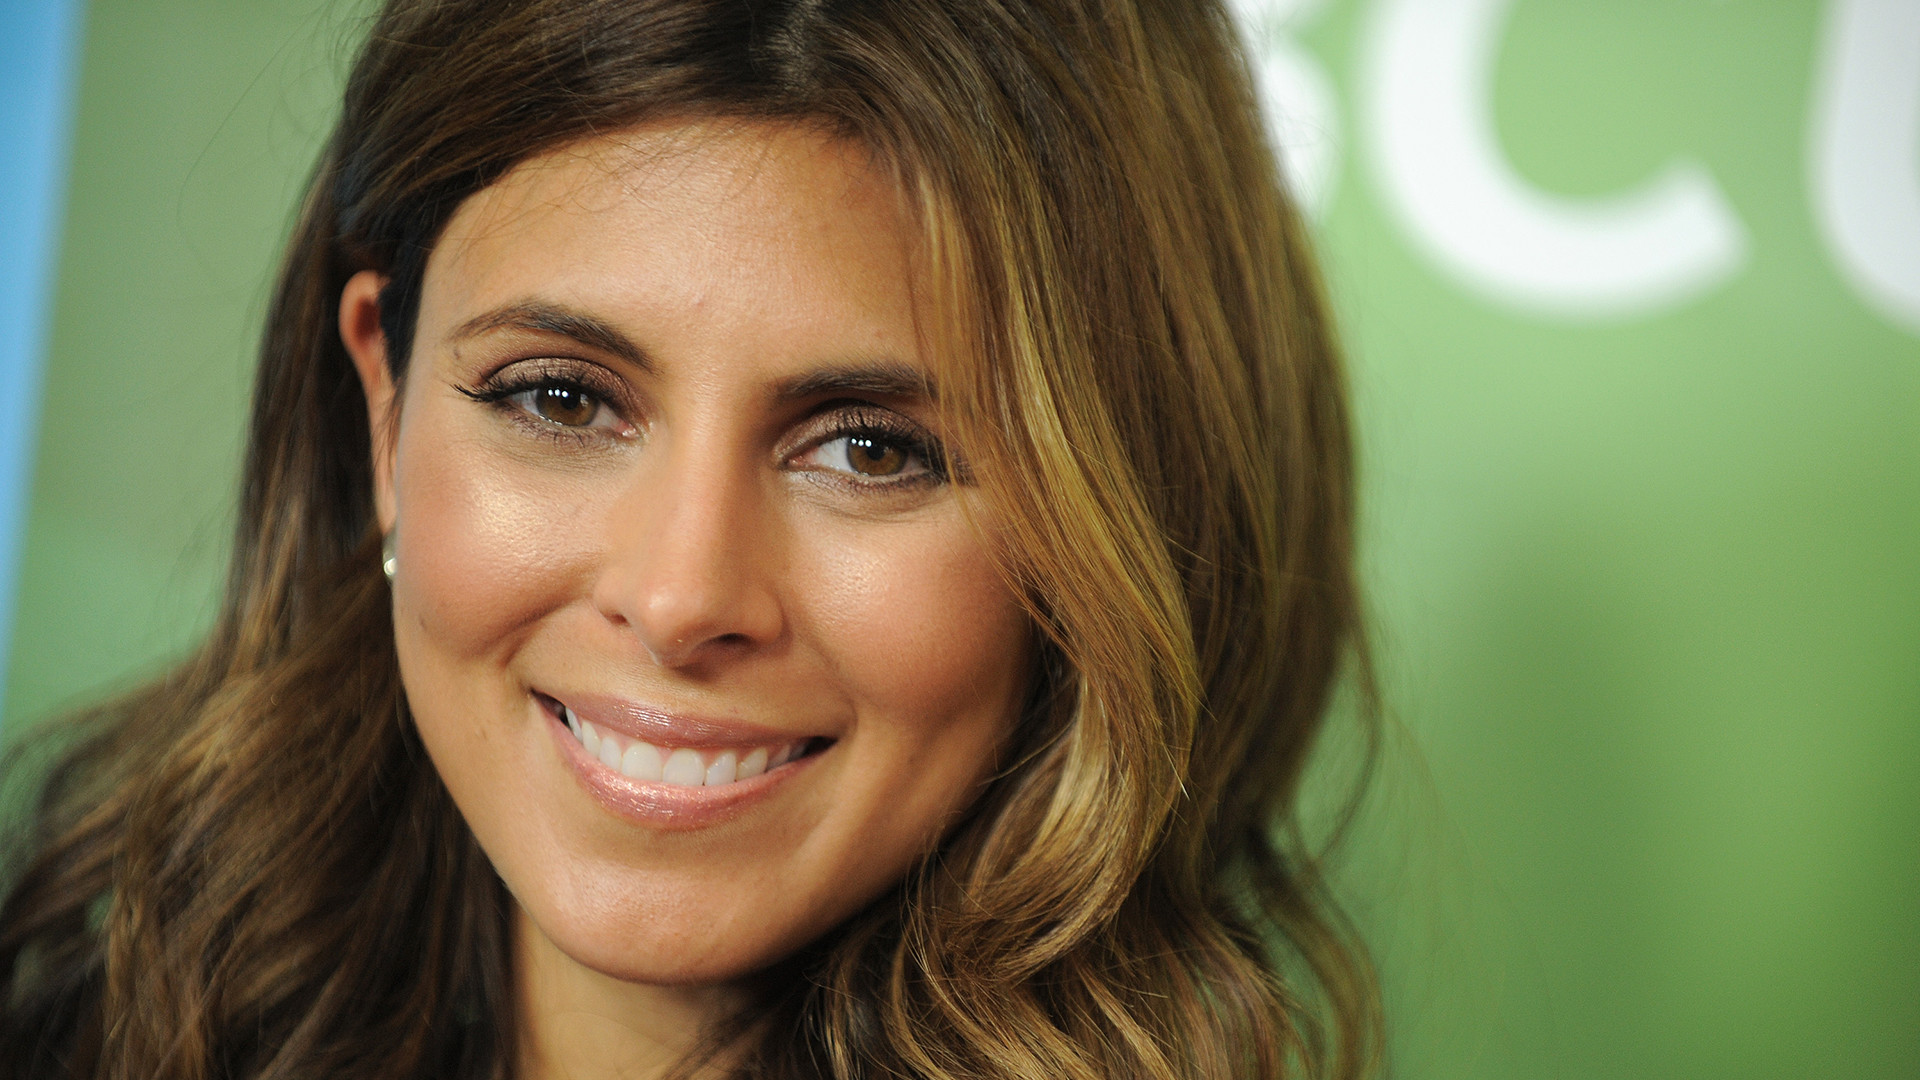 Res: 1920x1080, Jamie-Lynn Sigler: James Gandolfini was 'protective' after MS my reveal -  TODAY.com